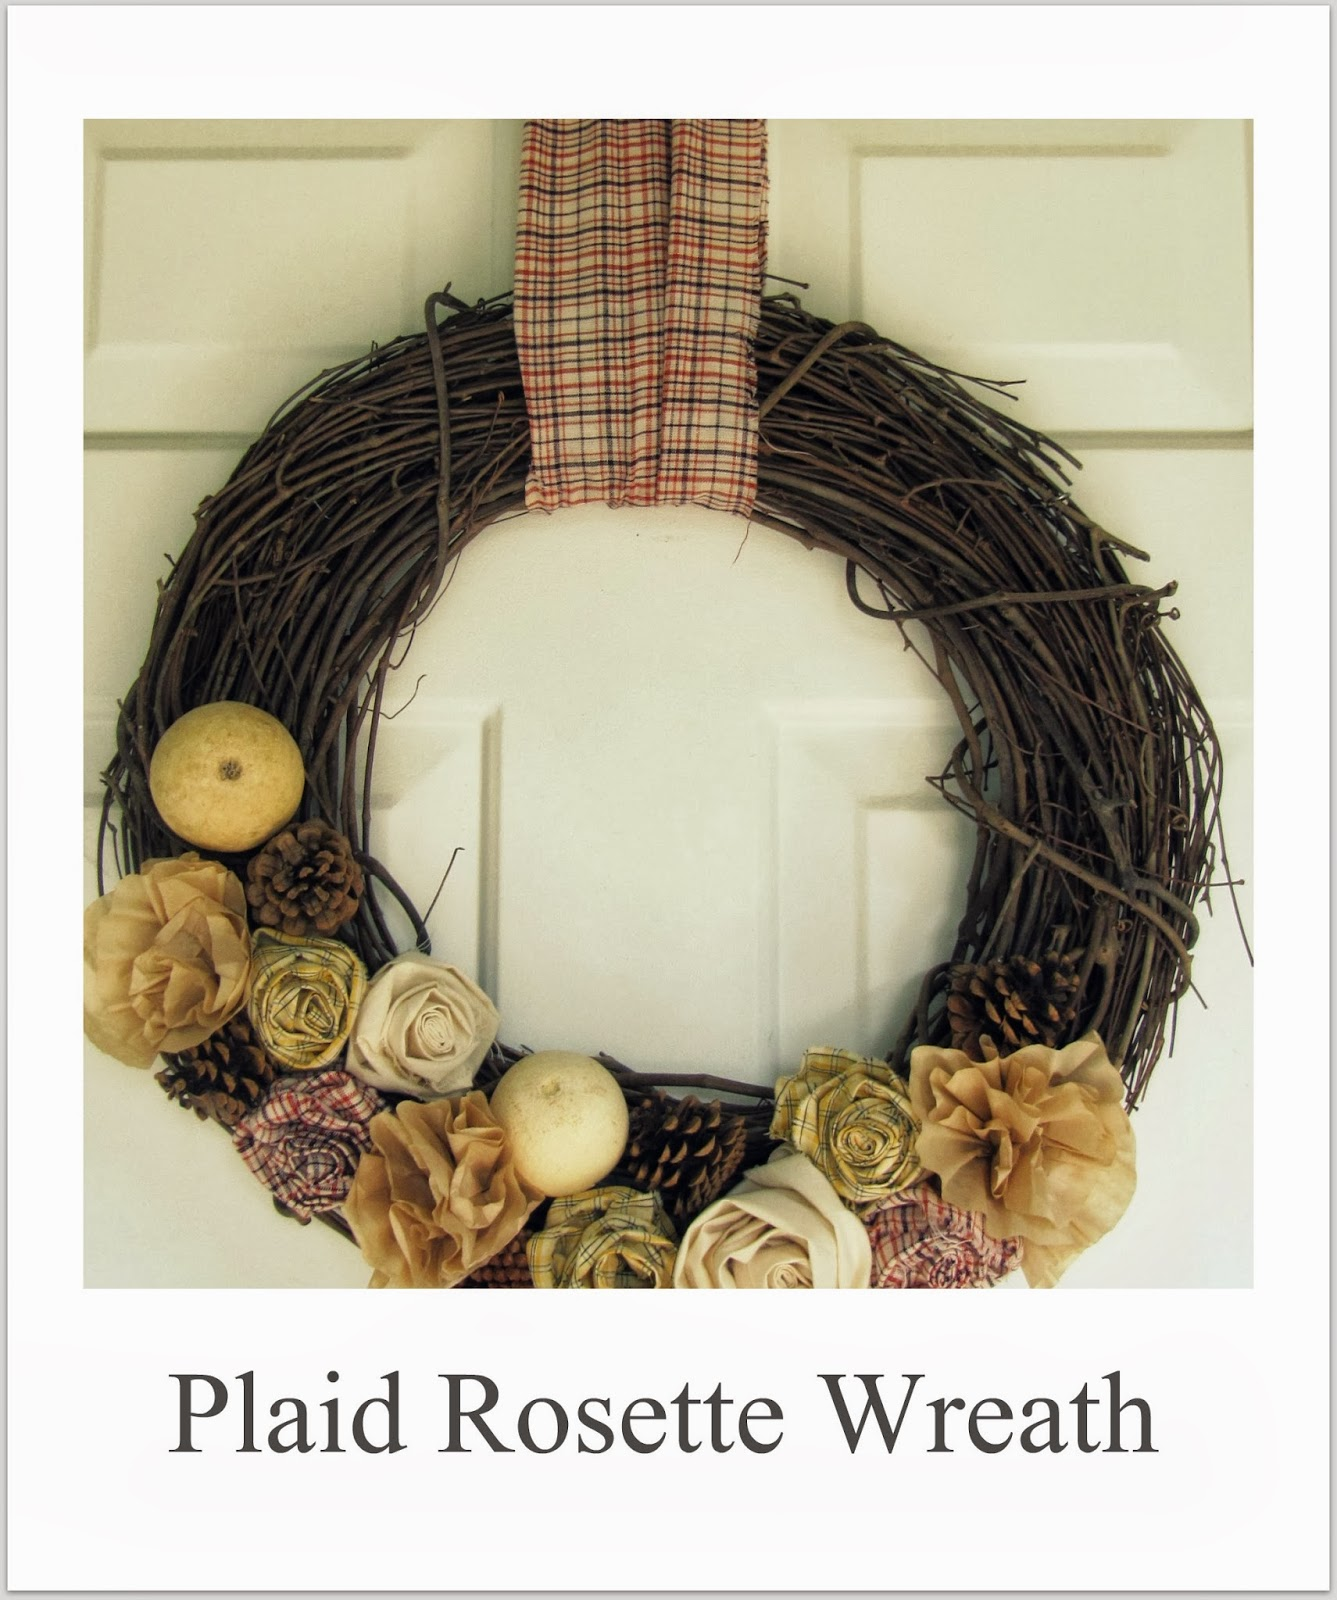 http://thewickerhouse.blogspot.com/2011/09/plaid-rosette-wreath.html